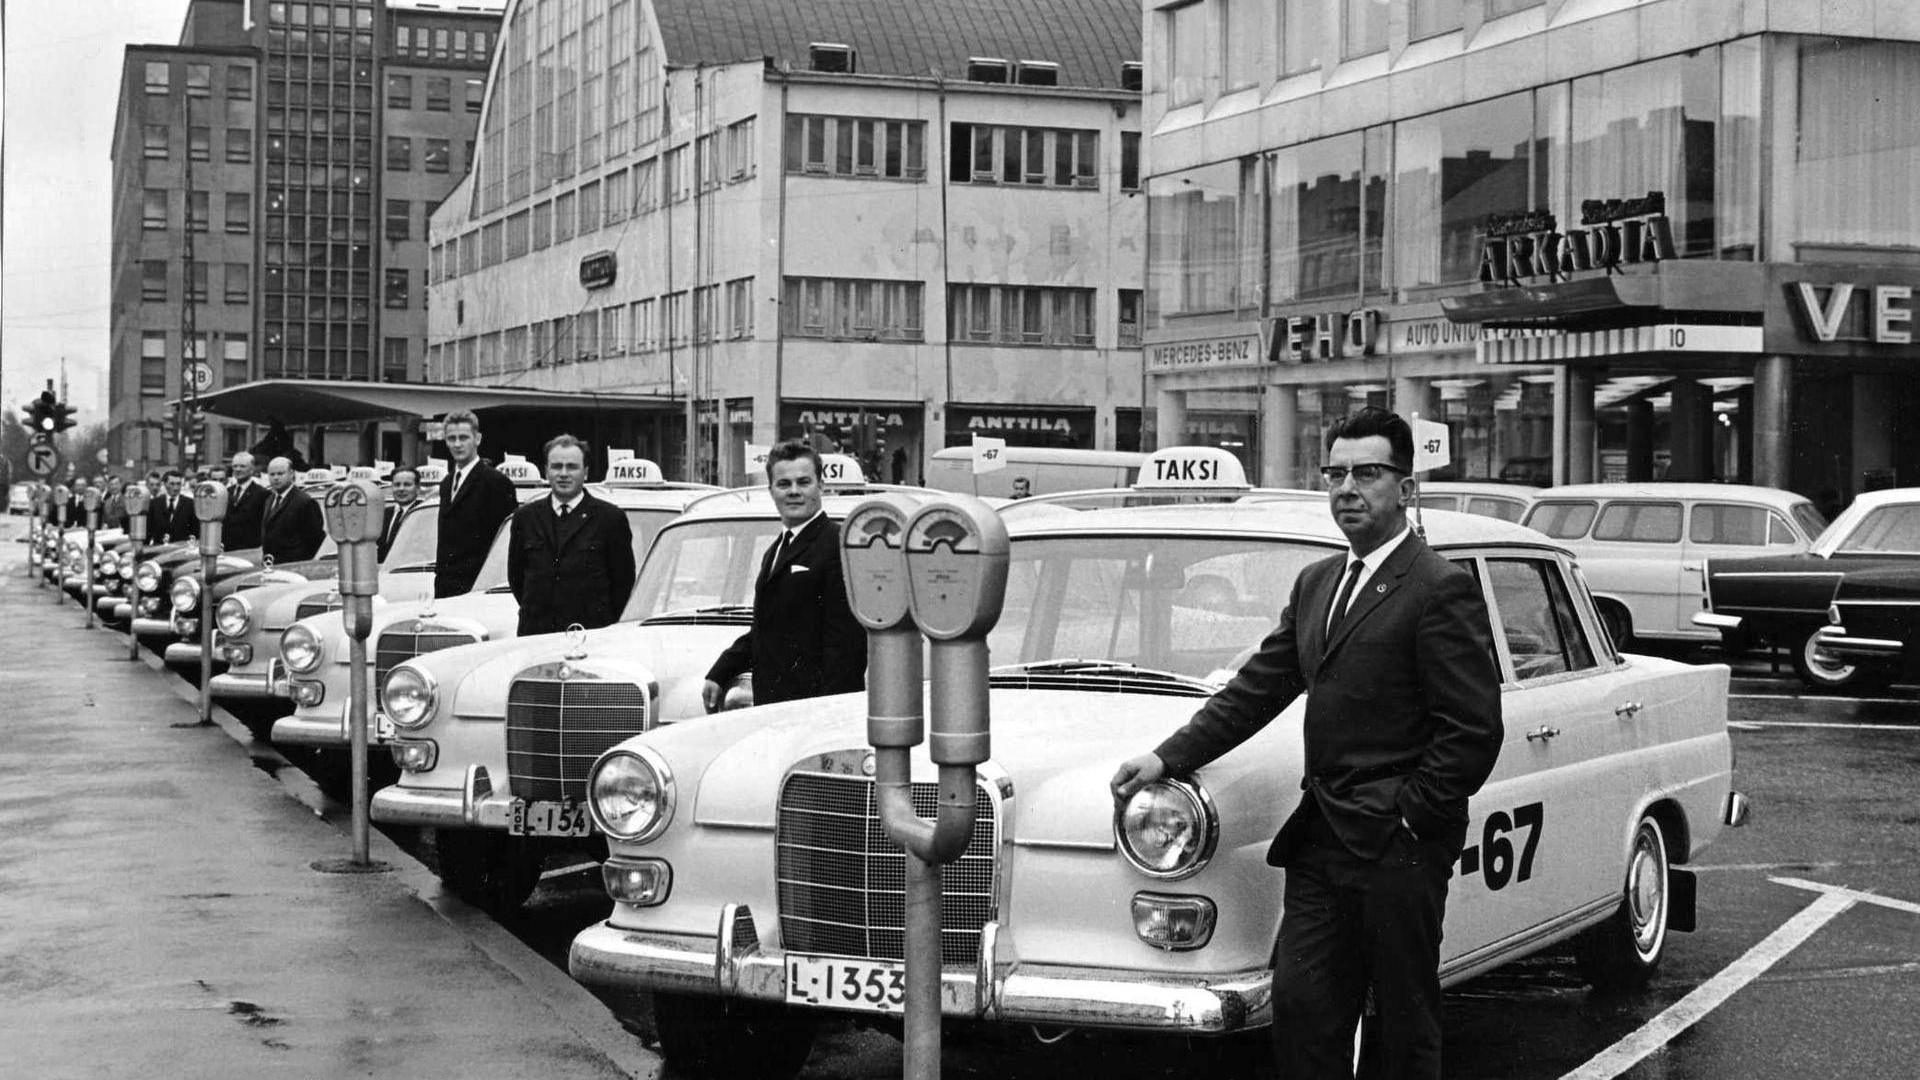 Mercedes taxis in 1966